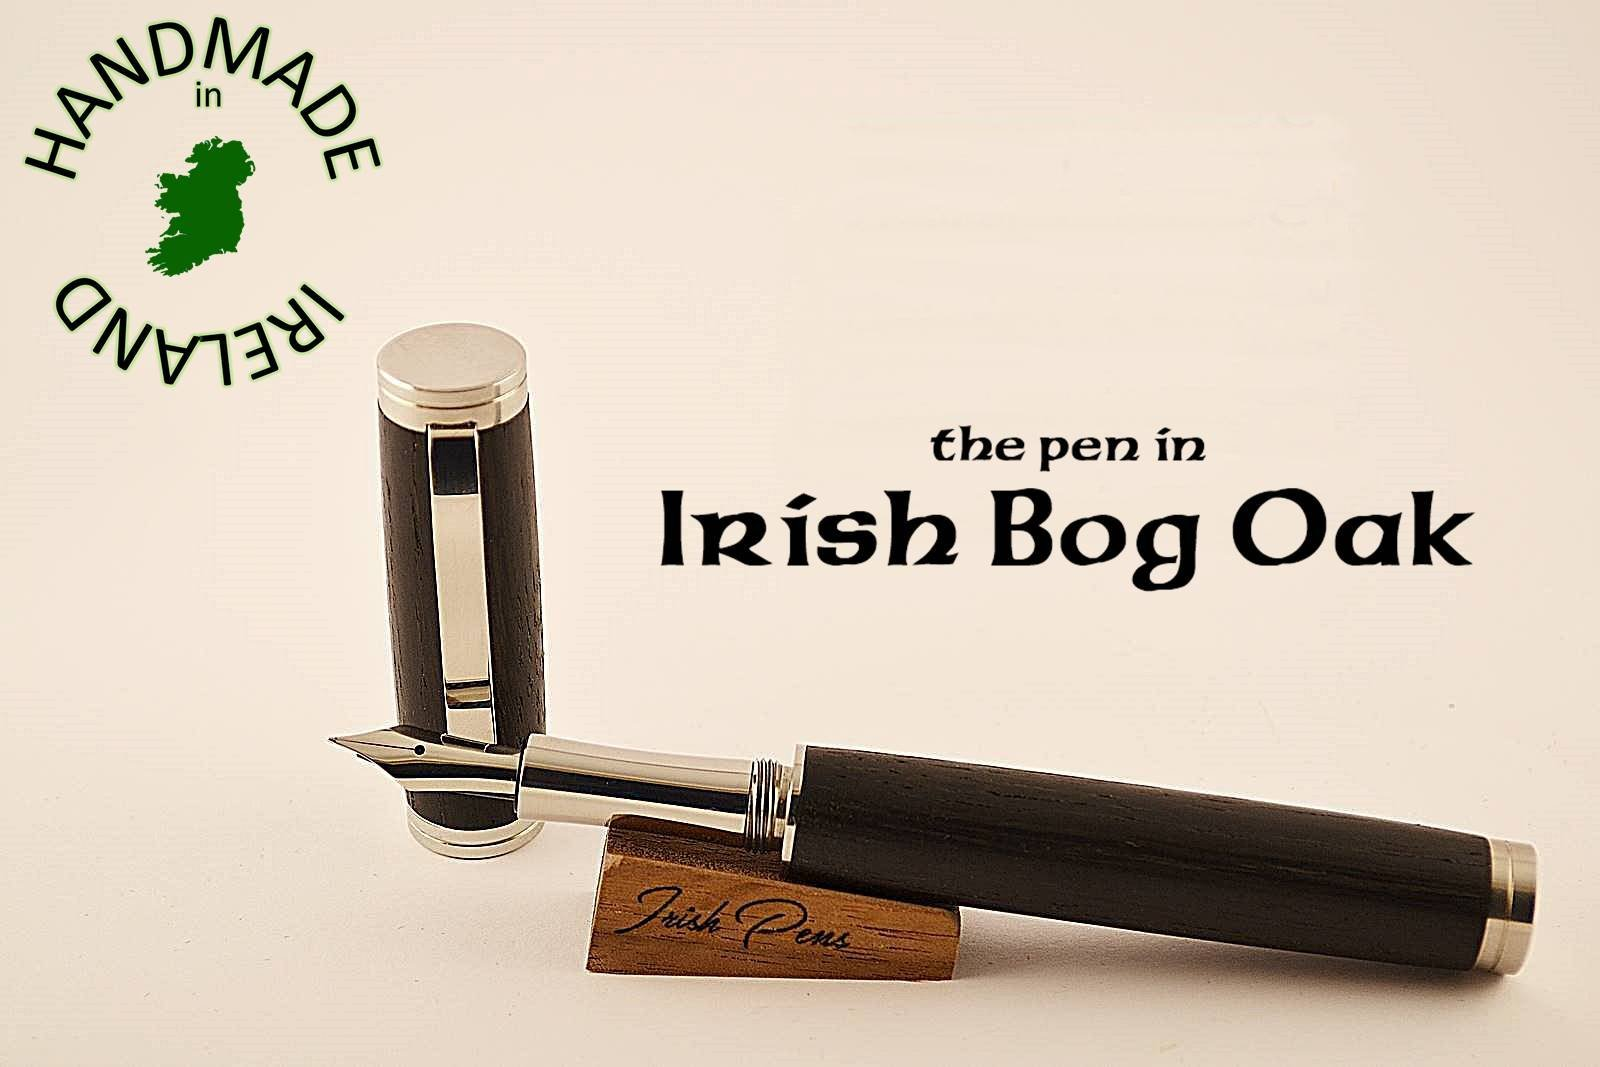 Irish bog oak with 303 Stainless Steel delivering a very contemporary fountain pen with Peter Bock nib as standard FREE Desk stand for the writing connoisseur FREE personal note in the pen case lid